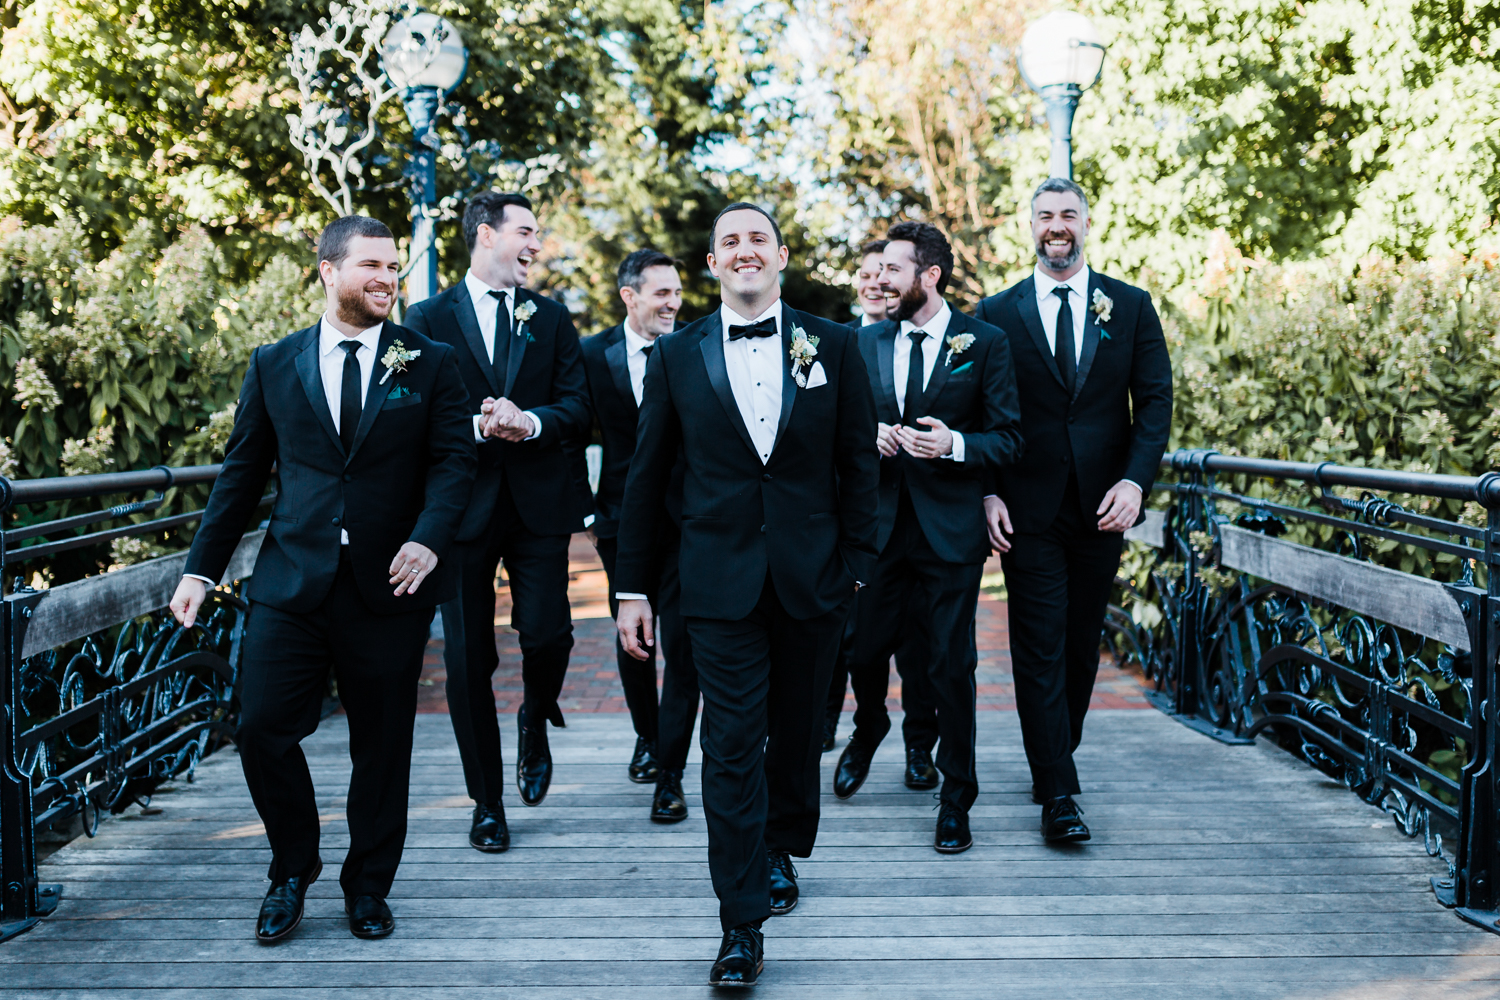 handsome groom with his groomsmen - Fall wedding inspo